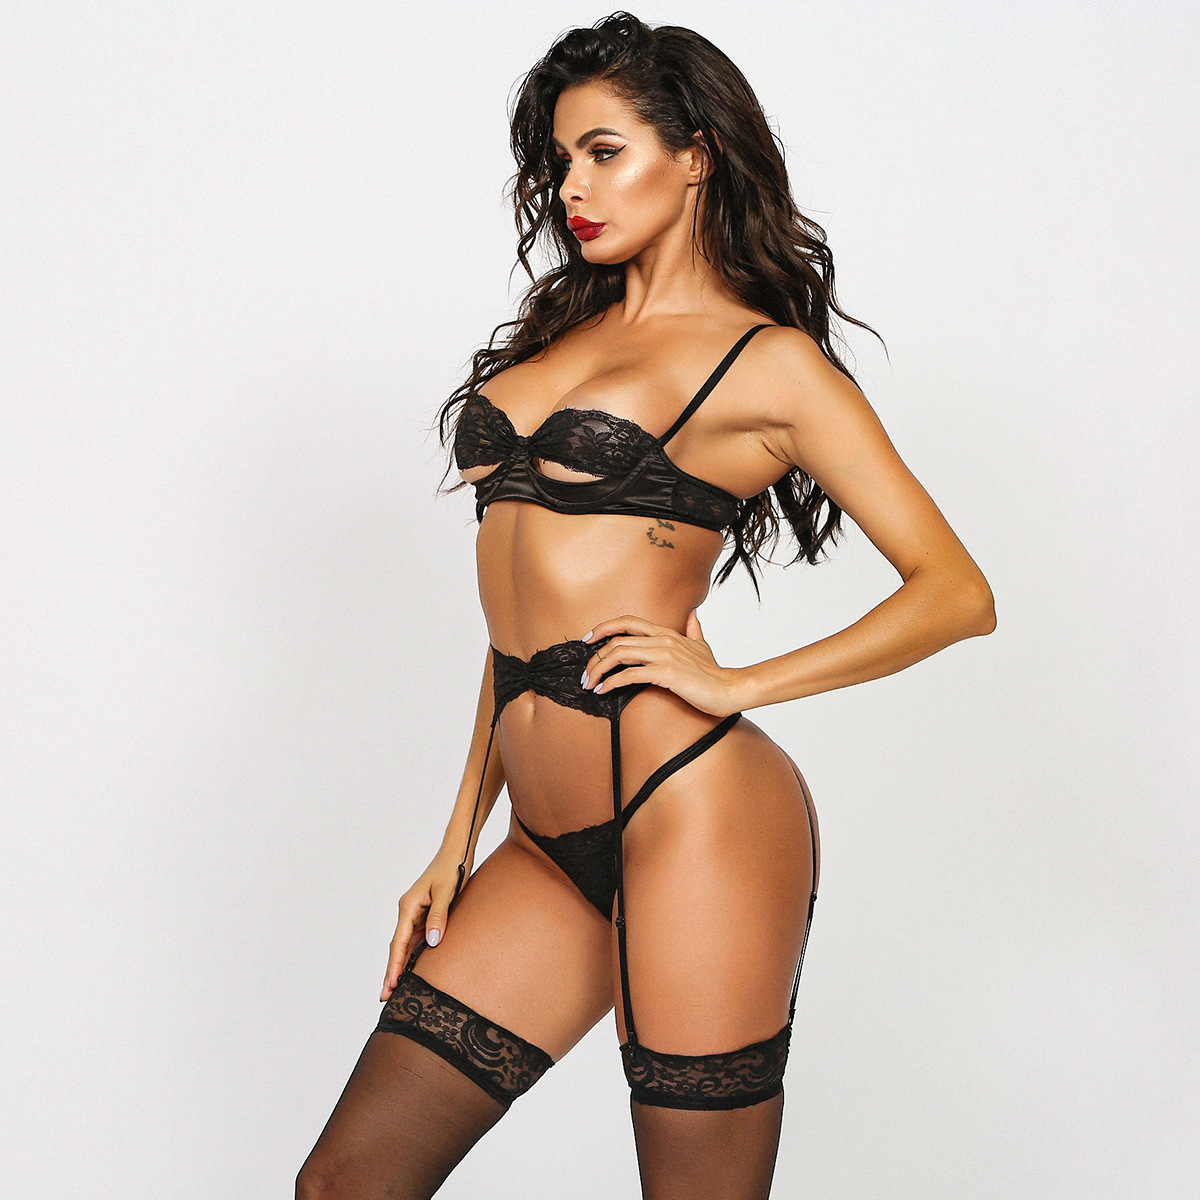 Hollow Lace Lingerie Women Underwear Set See Through Push Up Sexy Bra Patry Set Wholesale Bodycon Female New Lingeries